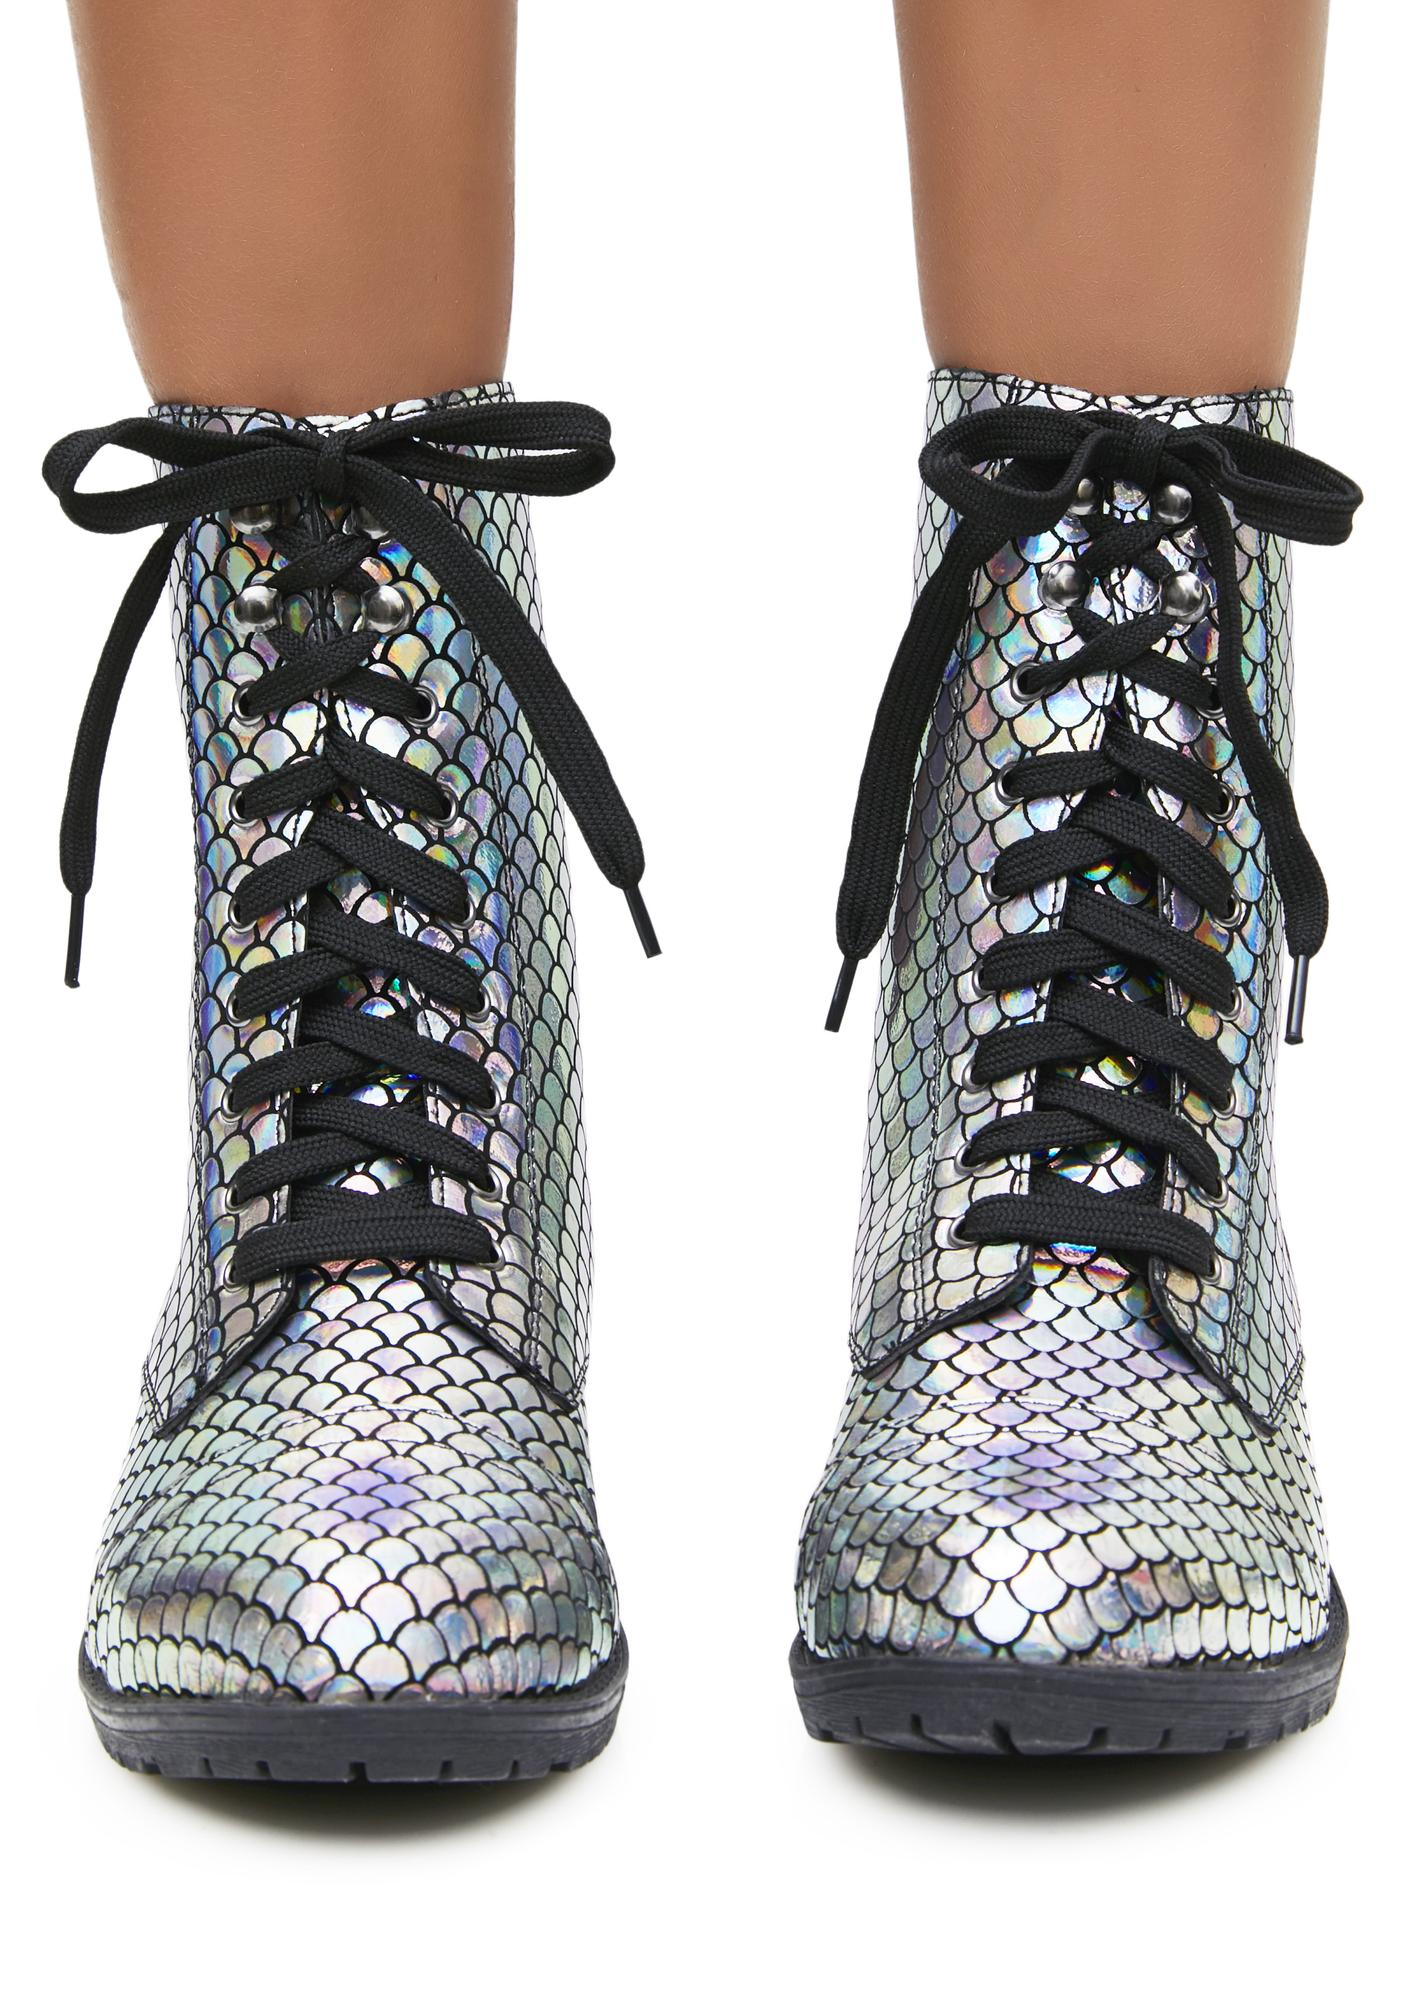 Mermaid Tail Combat Boots